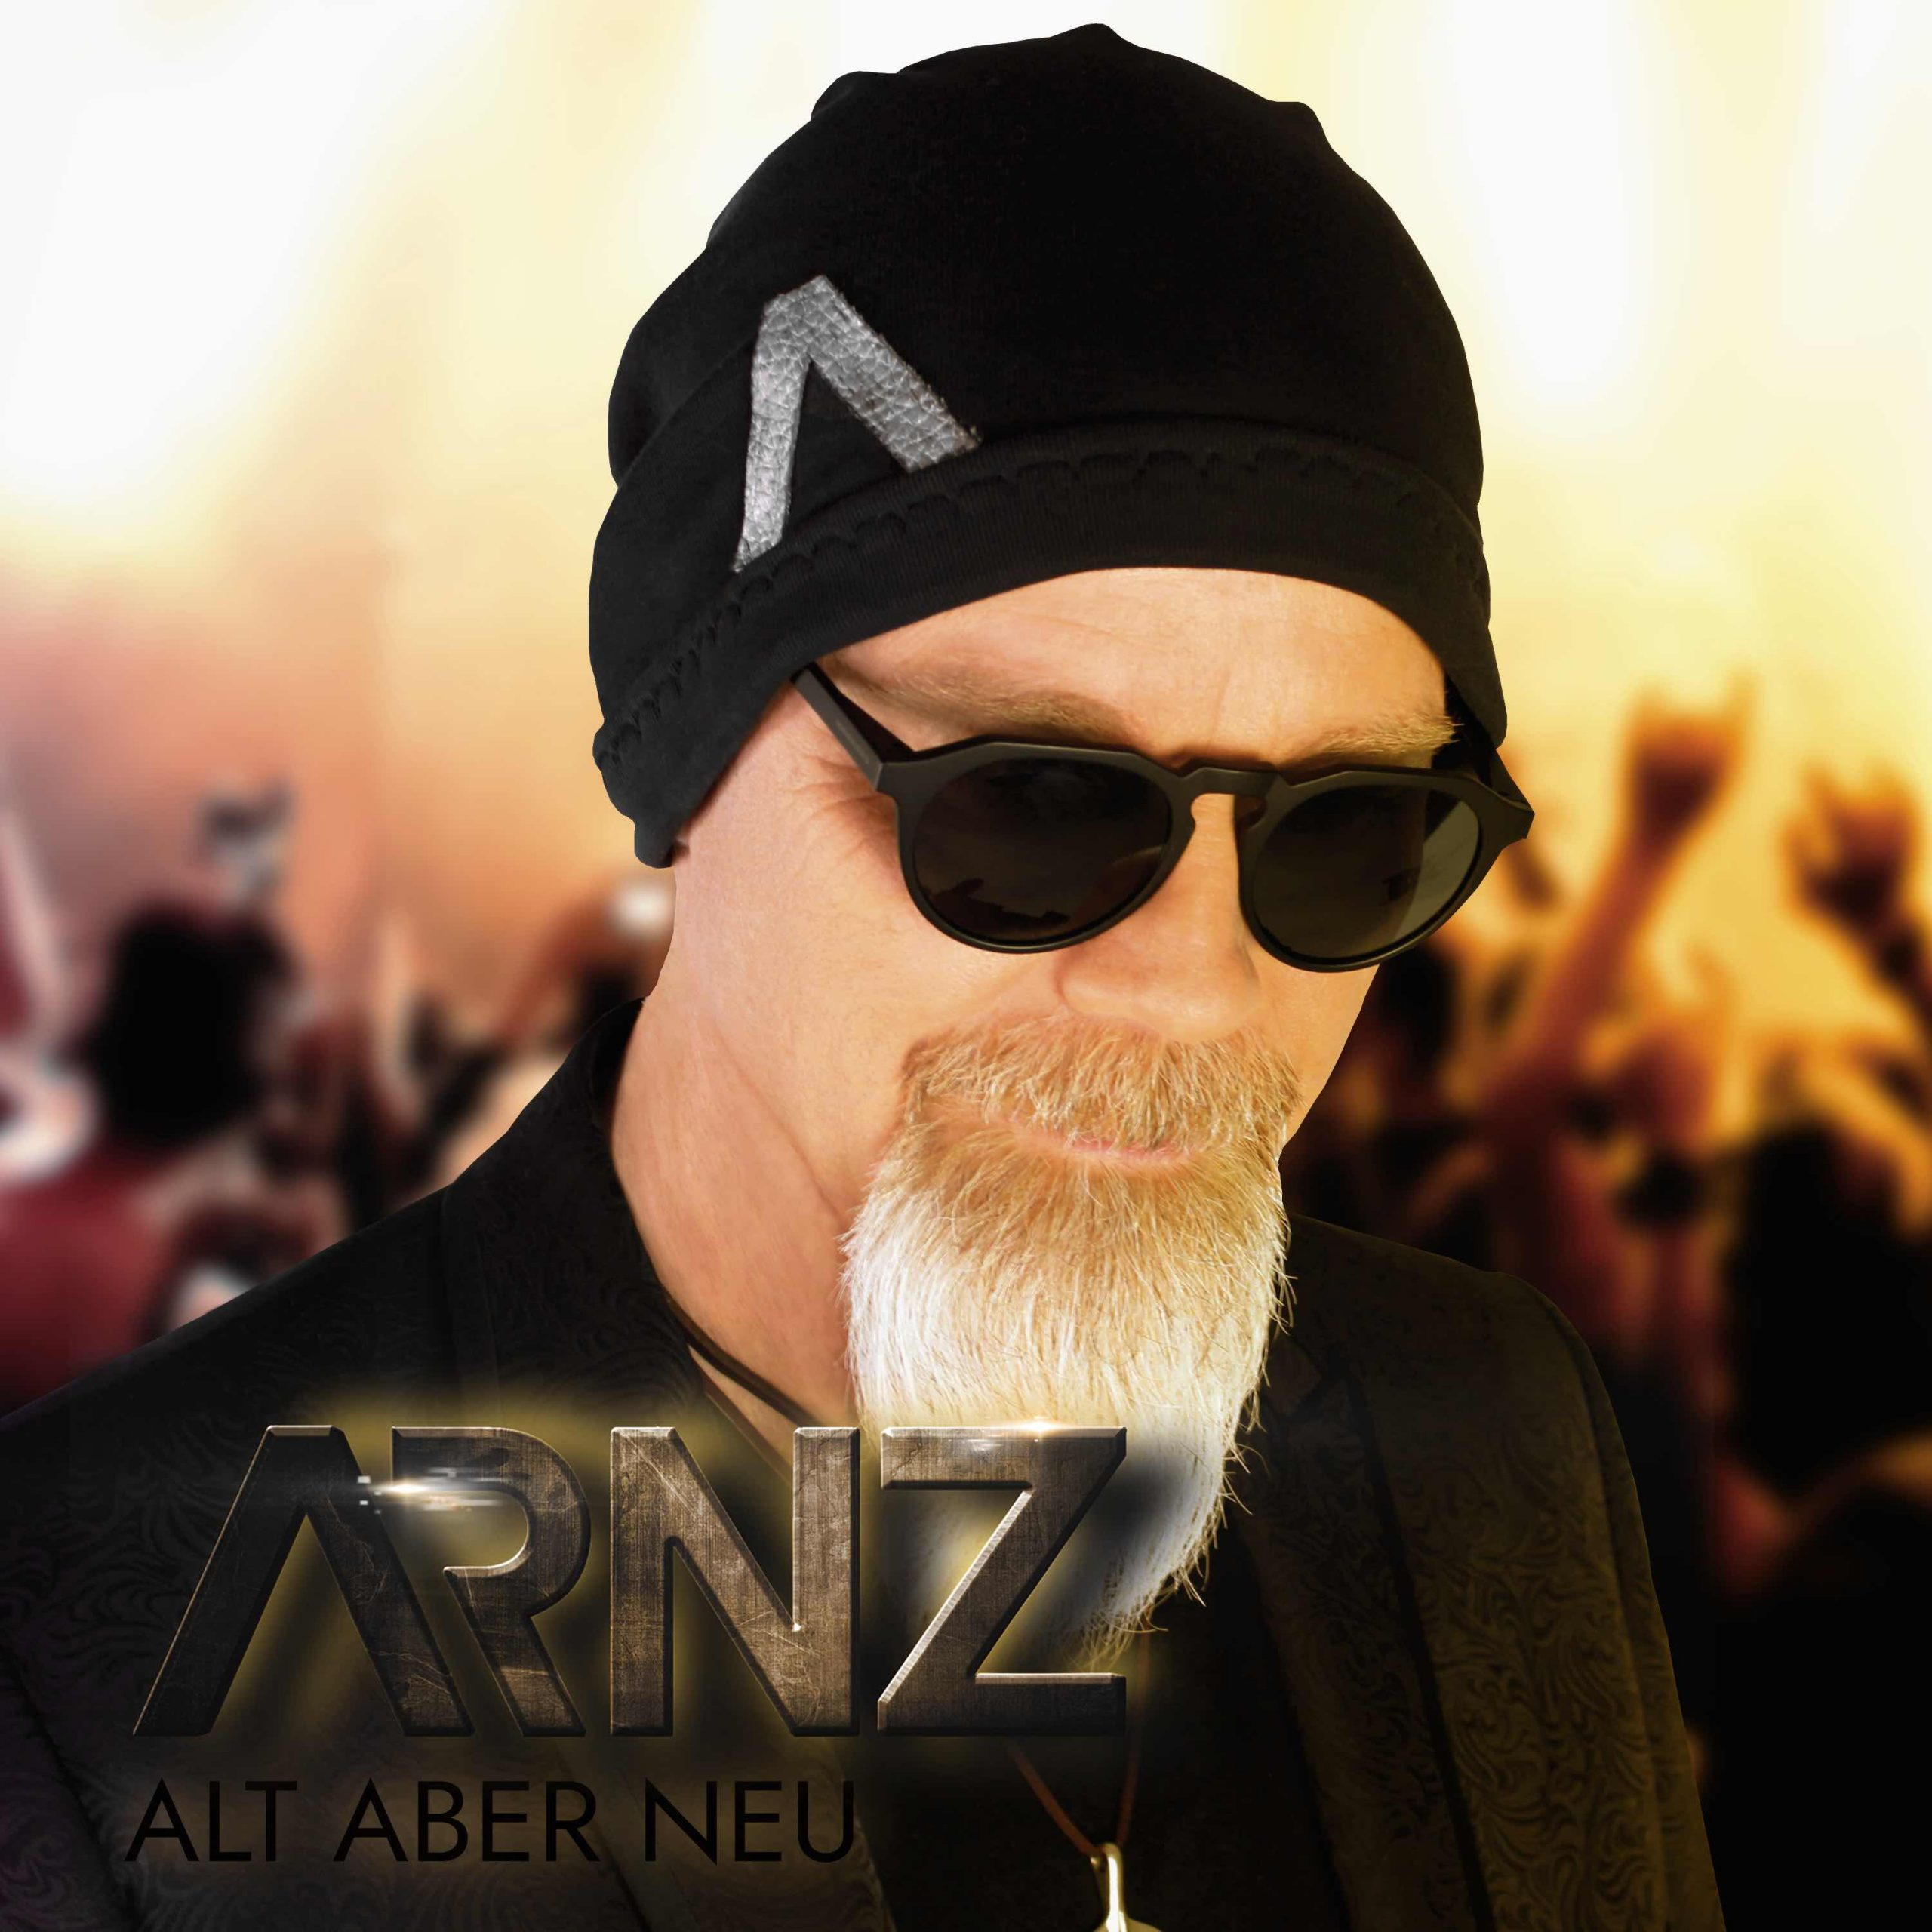 ARNZ-Alt aber neu .Single Cover